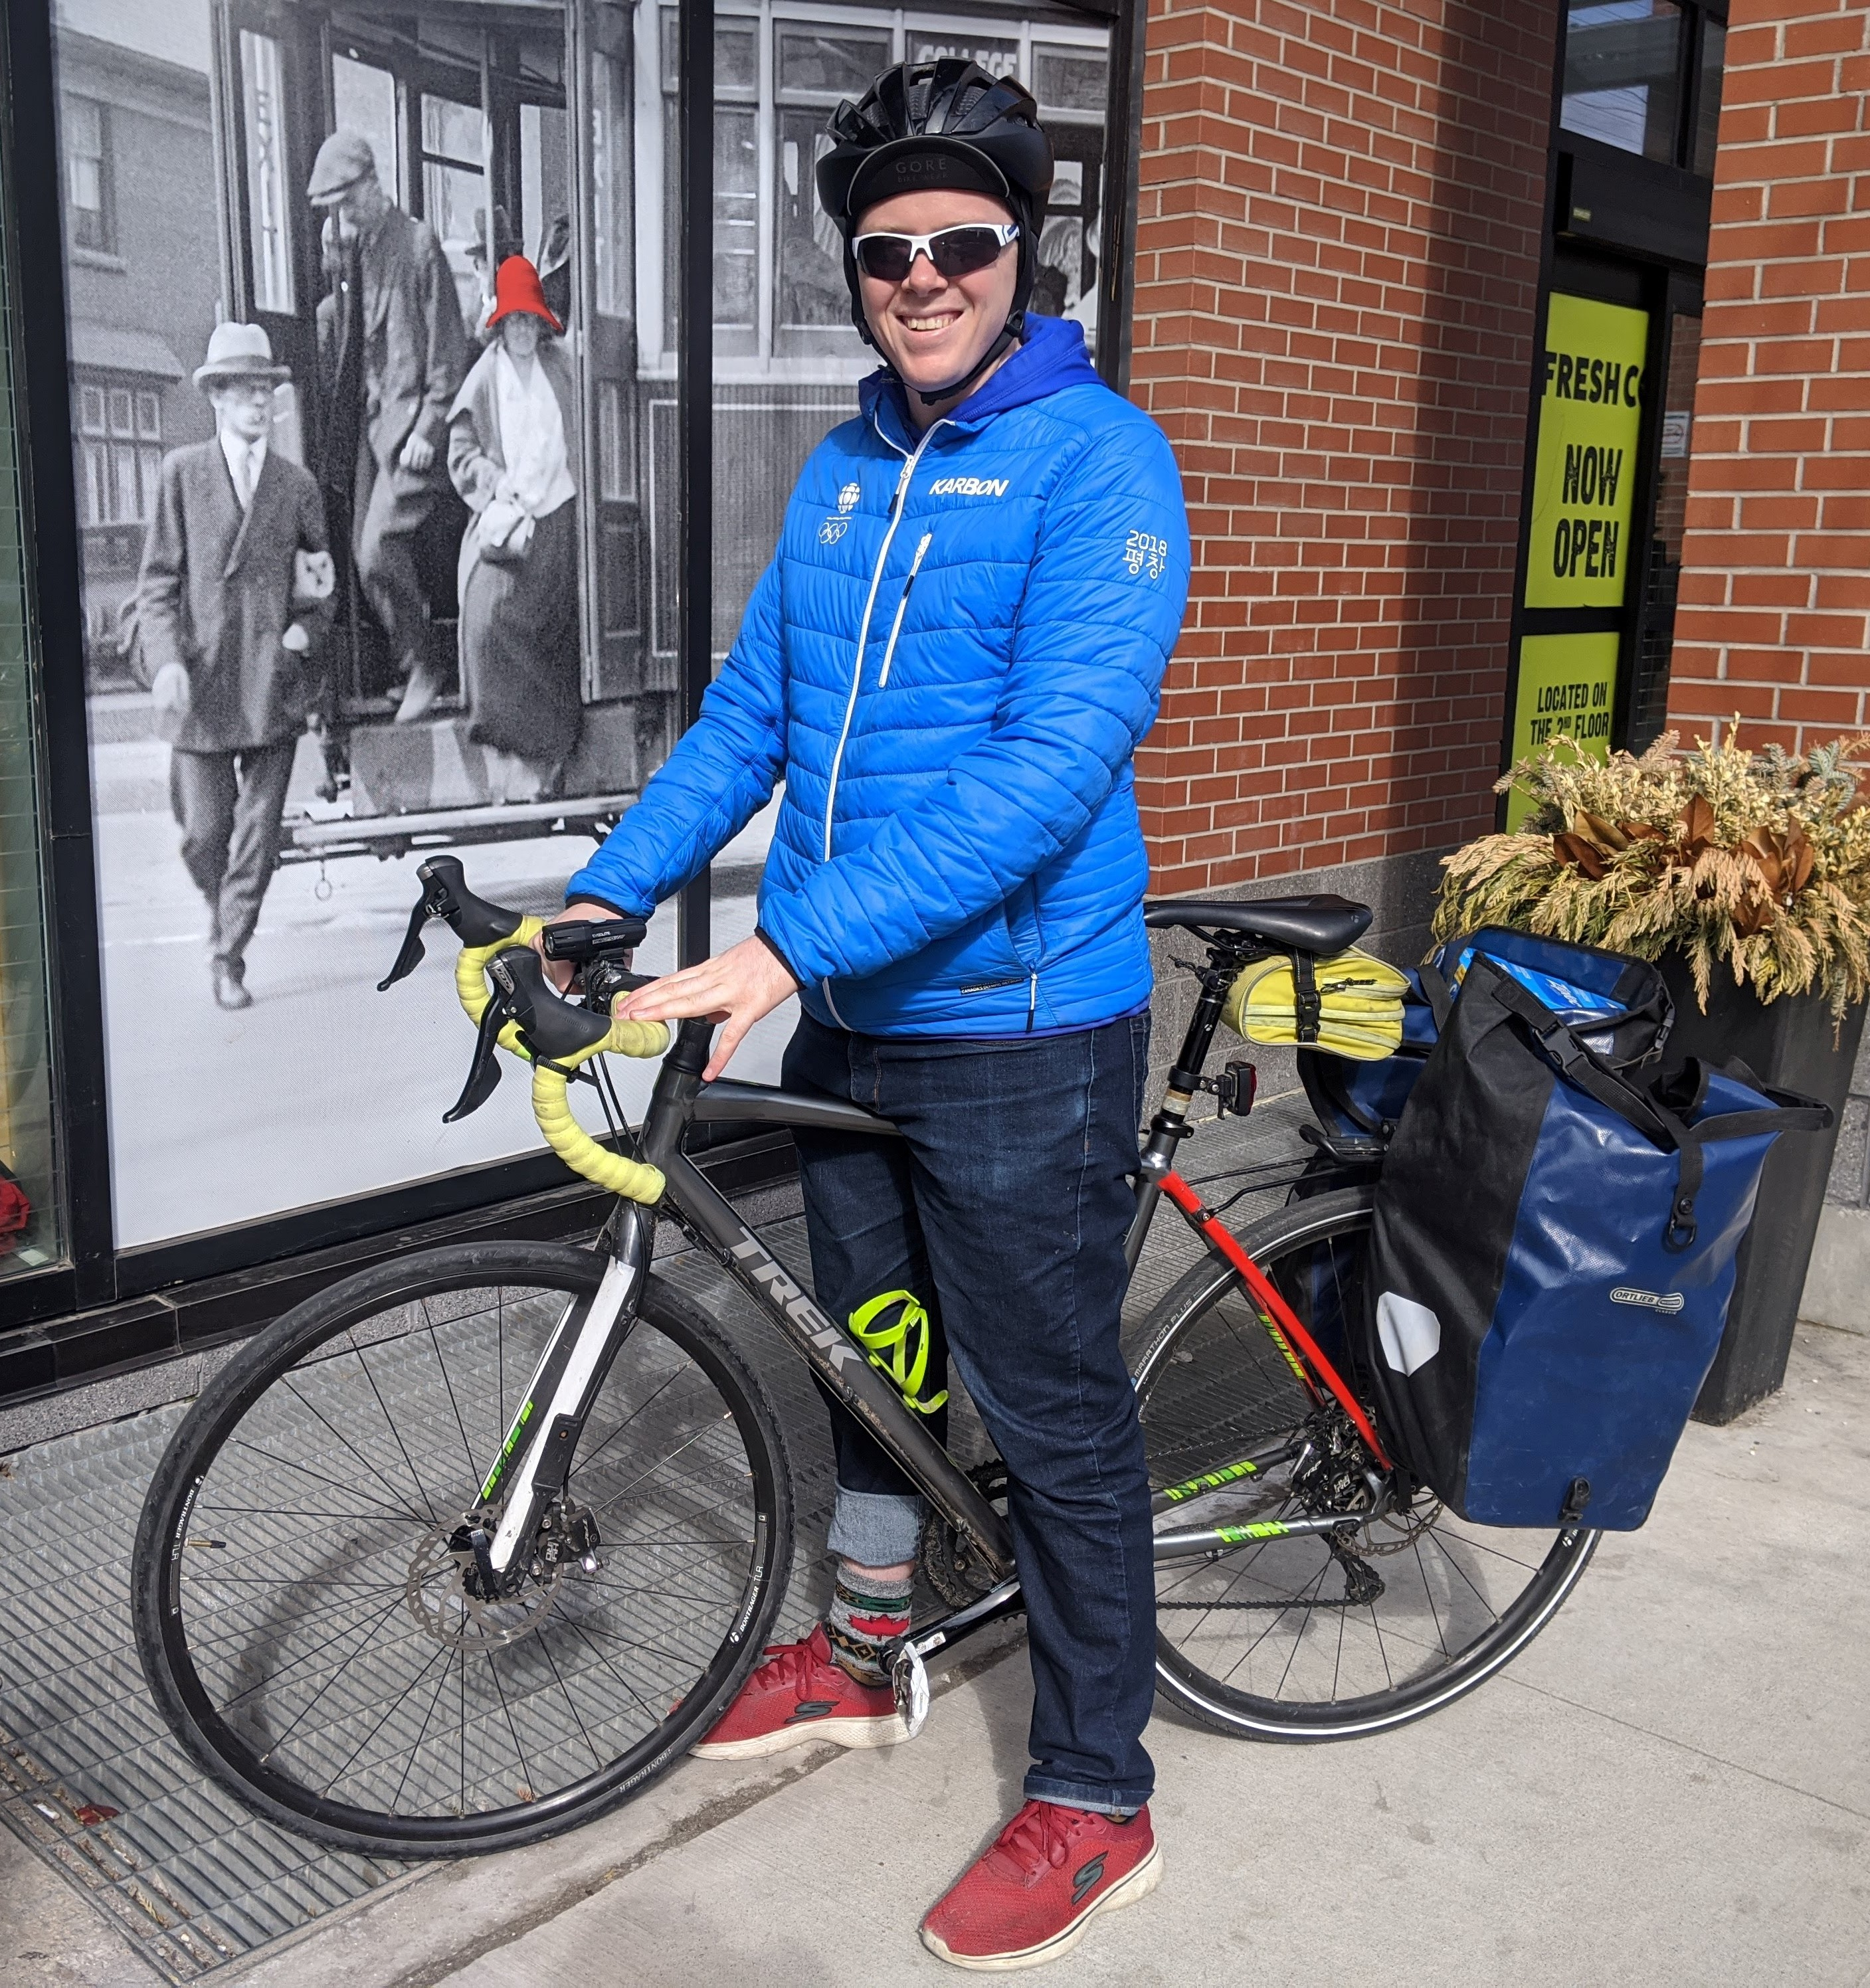 Person in jacket with bike loaded with groceries